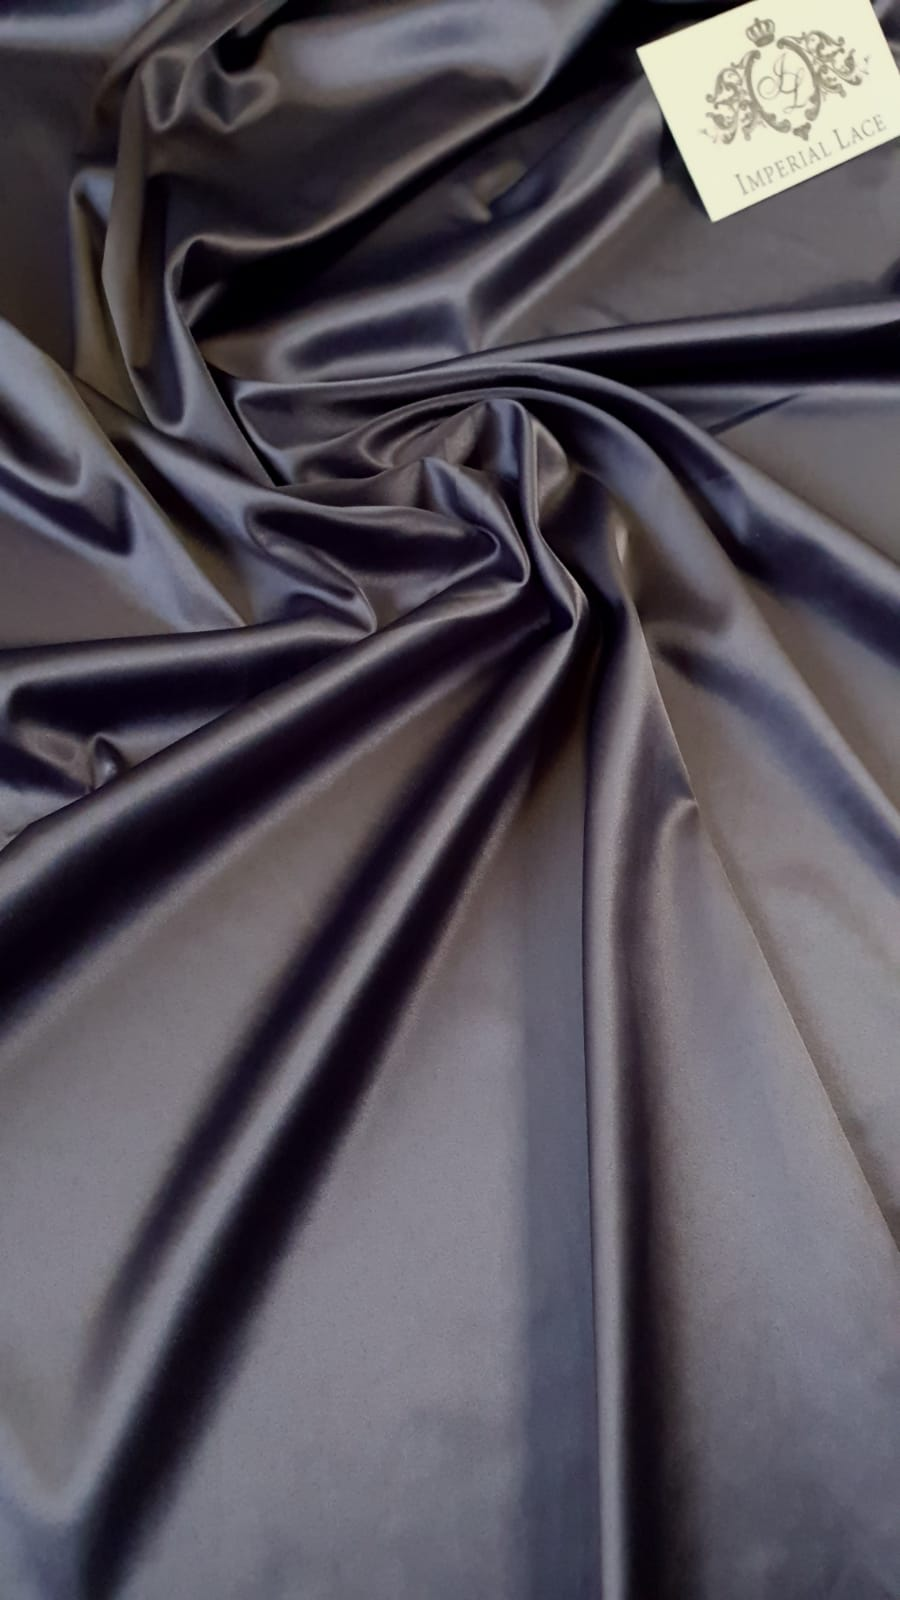 Dark Grey Satin Fabric With Elastane Silk Fabric Lace Fabric From Imperiallace Com